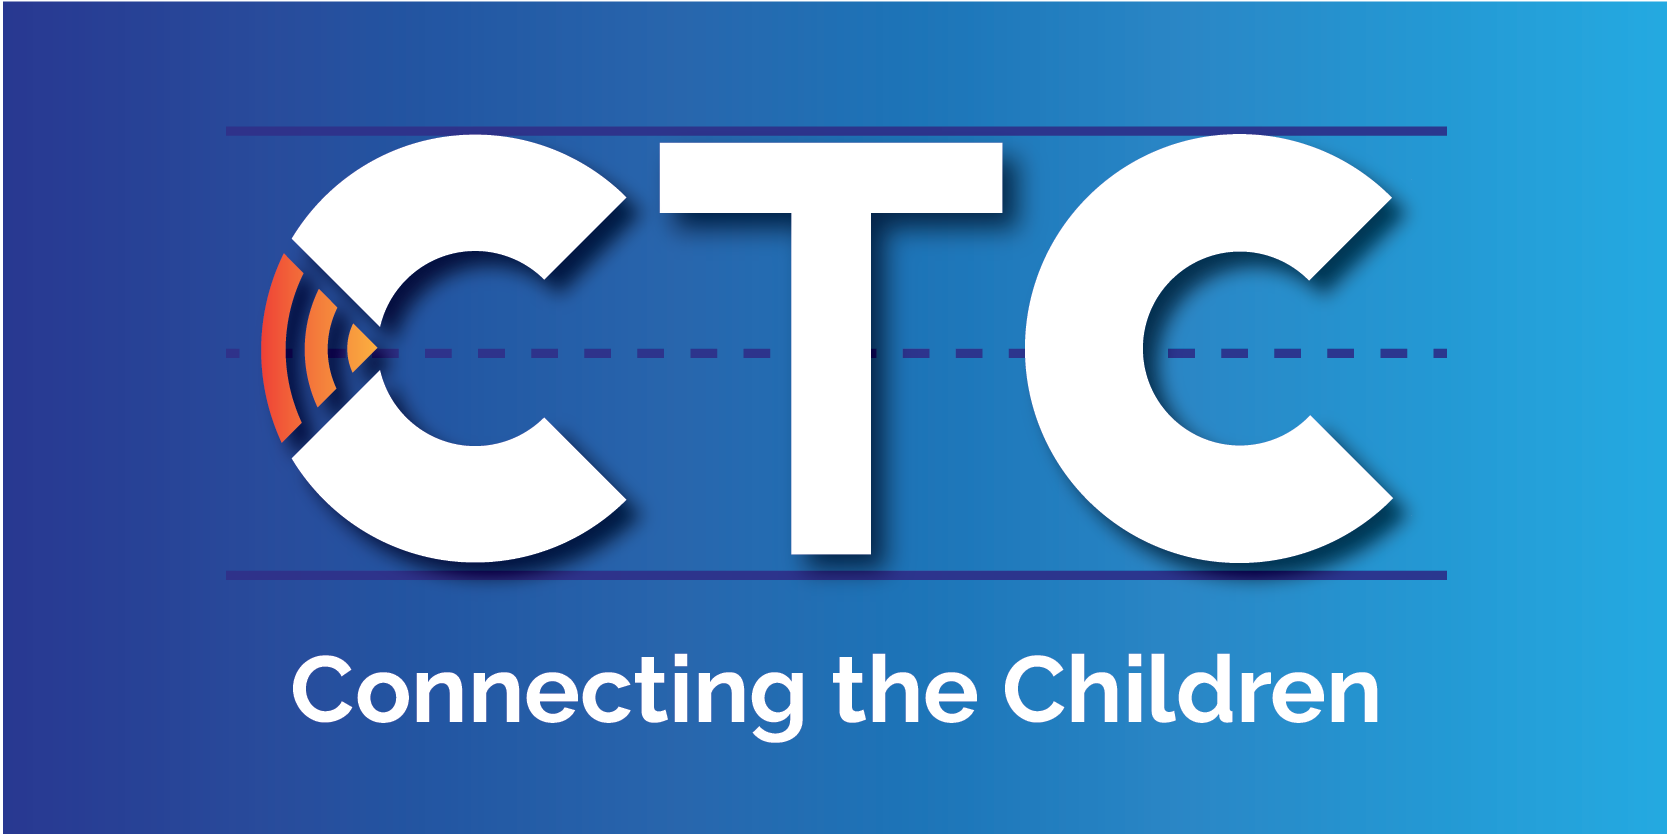 Connecting the Children